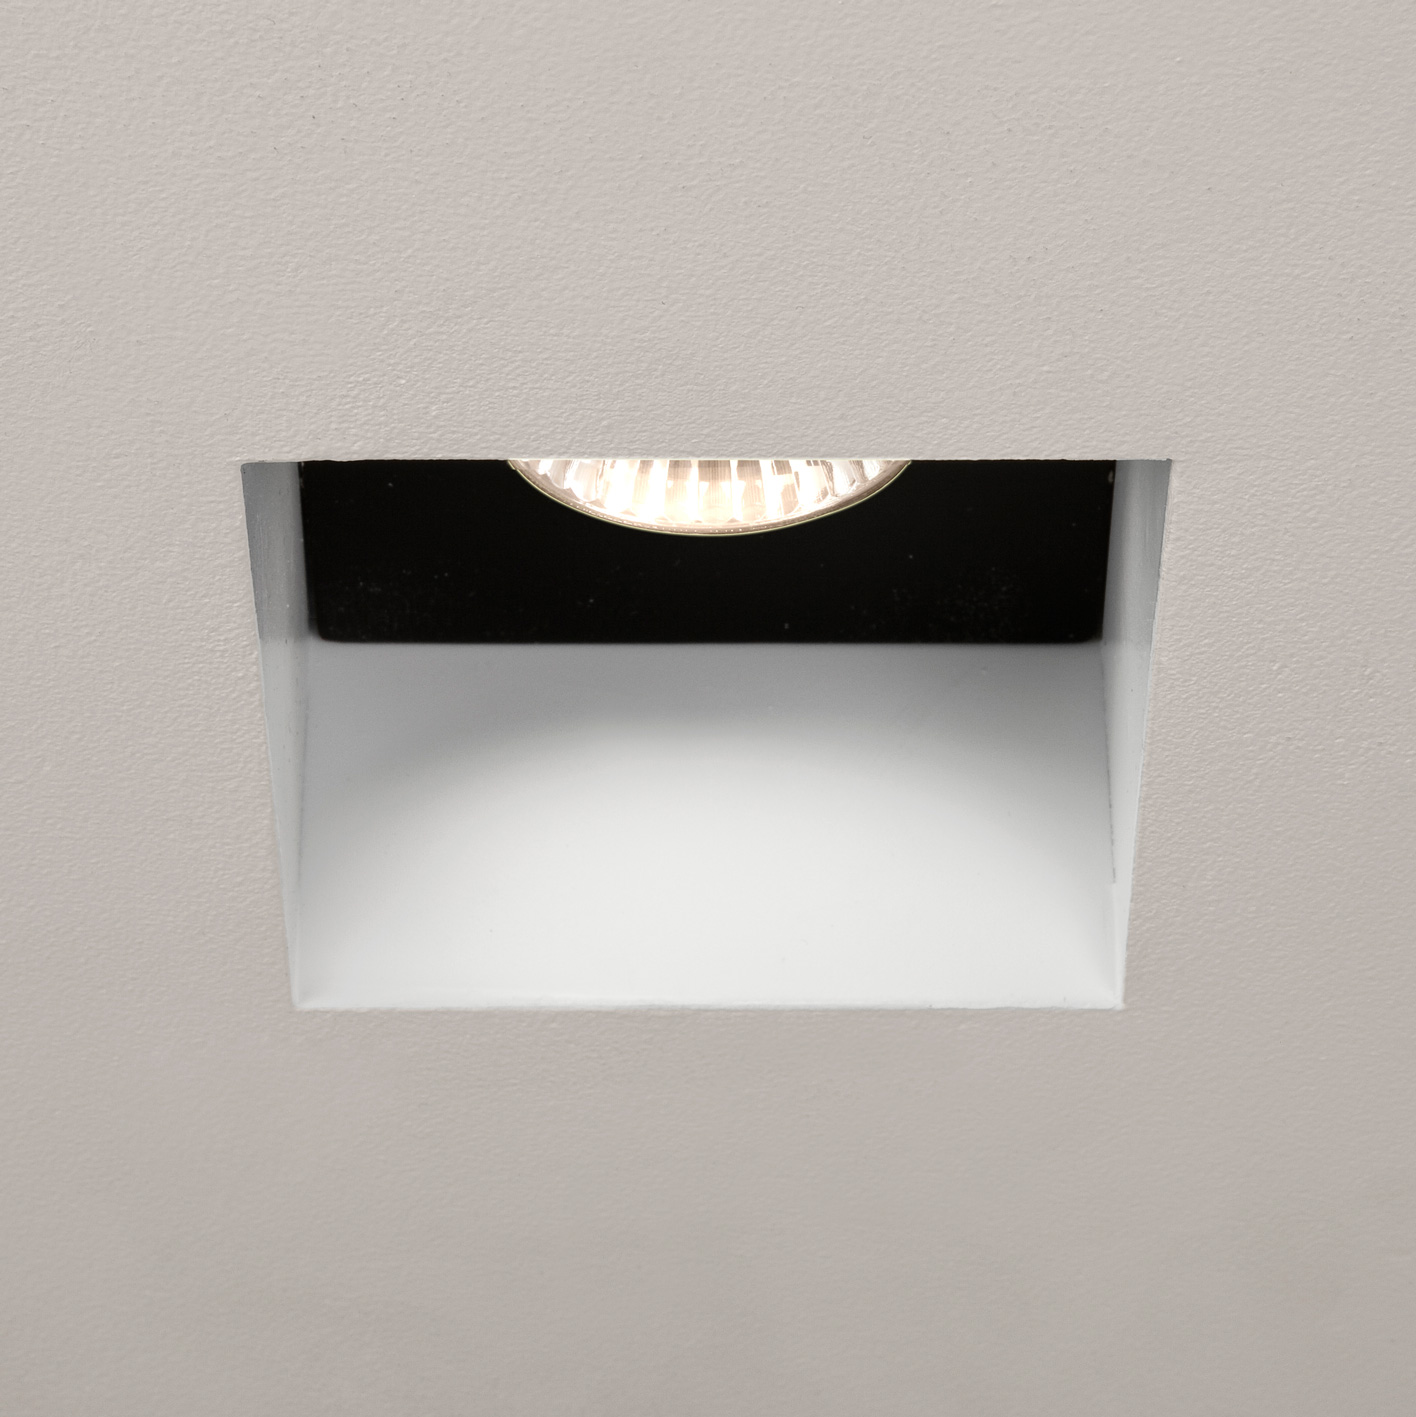 Astro Trimless square 5670 240V fire rated bathroom downlight 50W GU10 IP65 Thumbnail 1